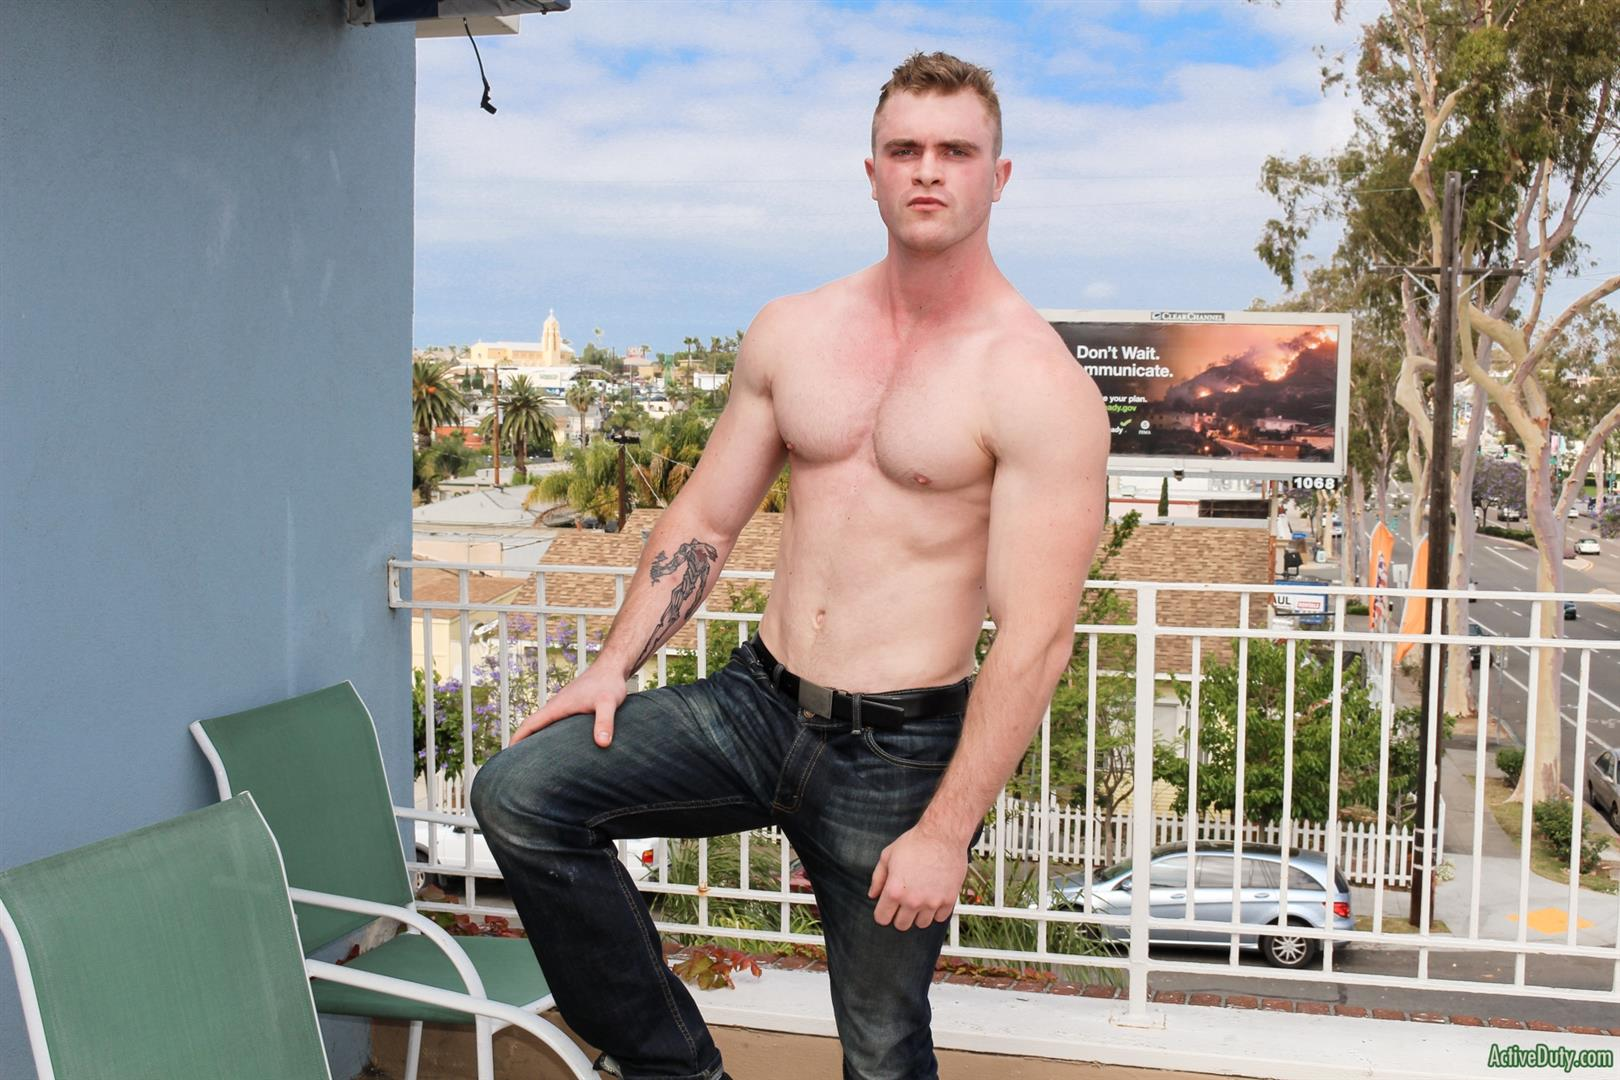 Active-Duty-Scott-Ambrose-Muscle-Naked-Marine-Jerking-Off-Amateur-Gay-Porn-06 Hairy Muscular American Marine Jerks His Thick Cock